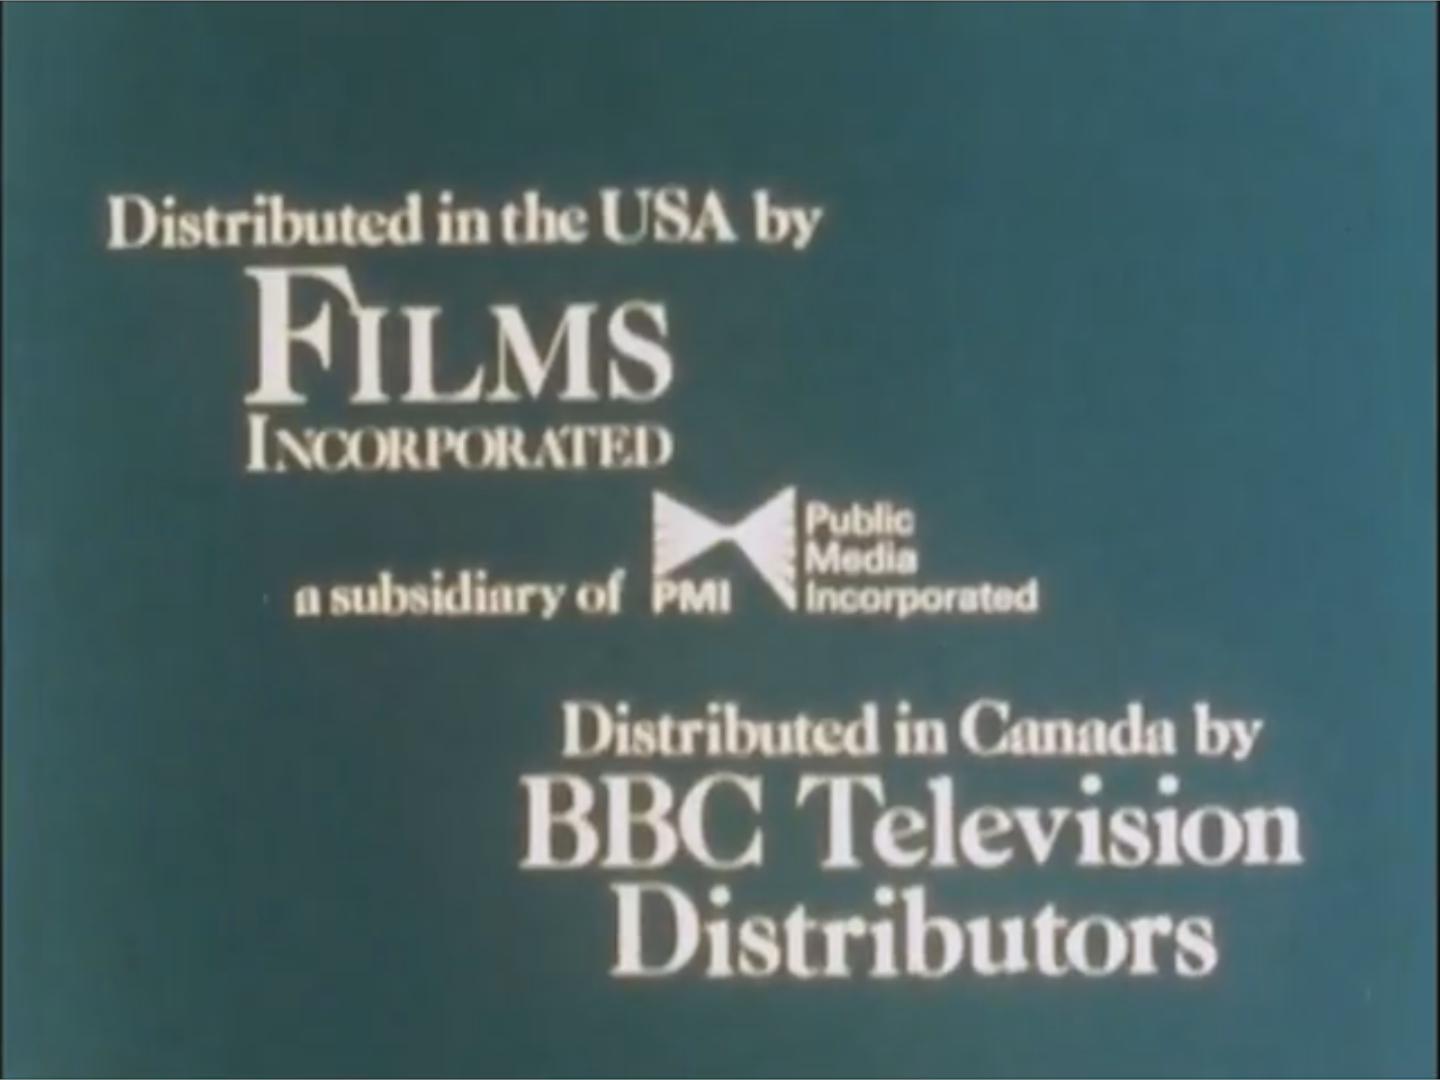 Films Incorporated (1970's-1980's) G